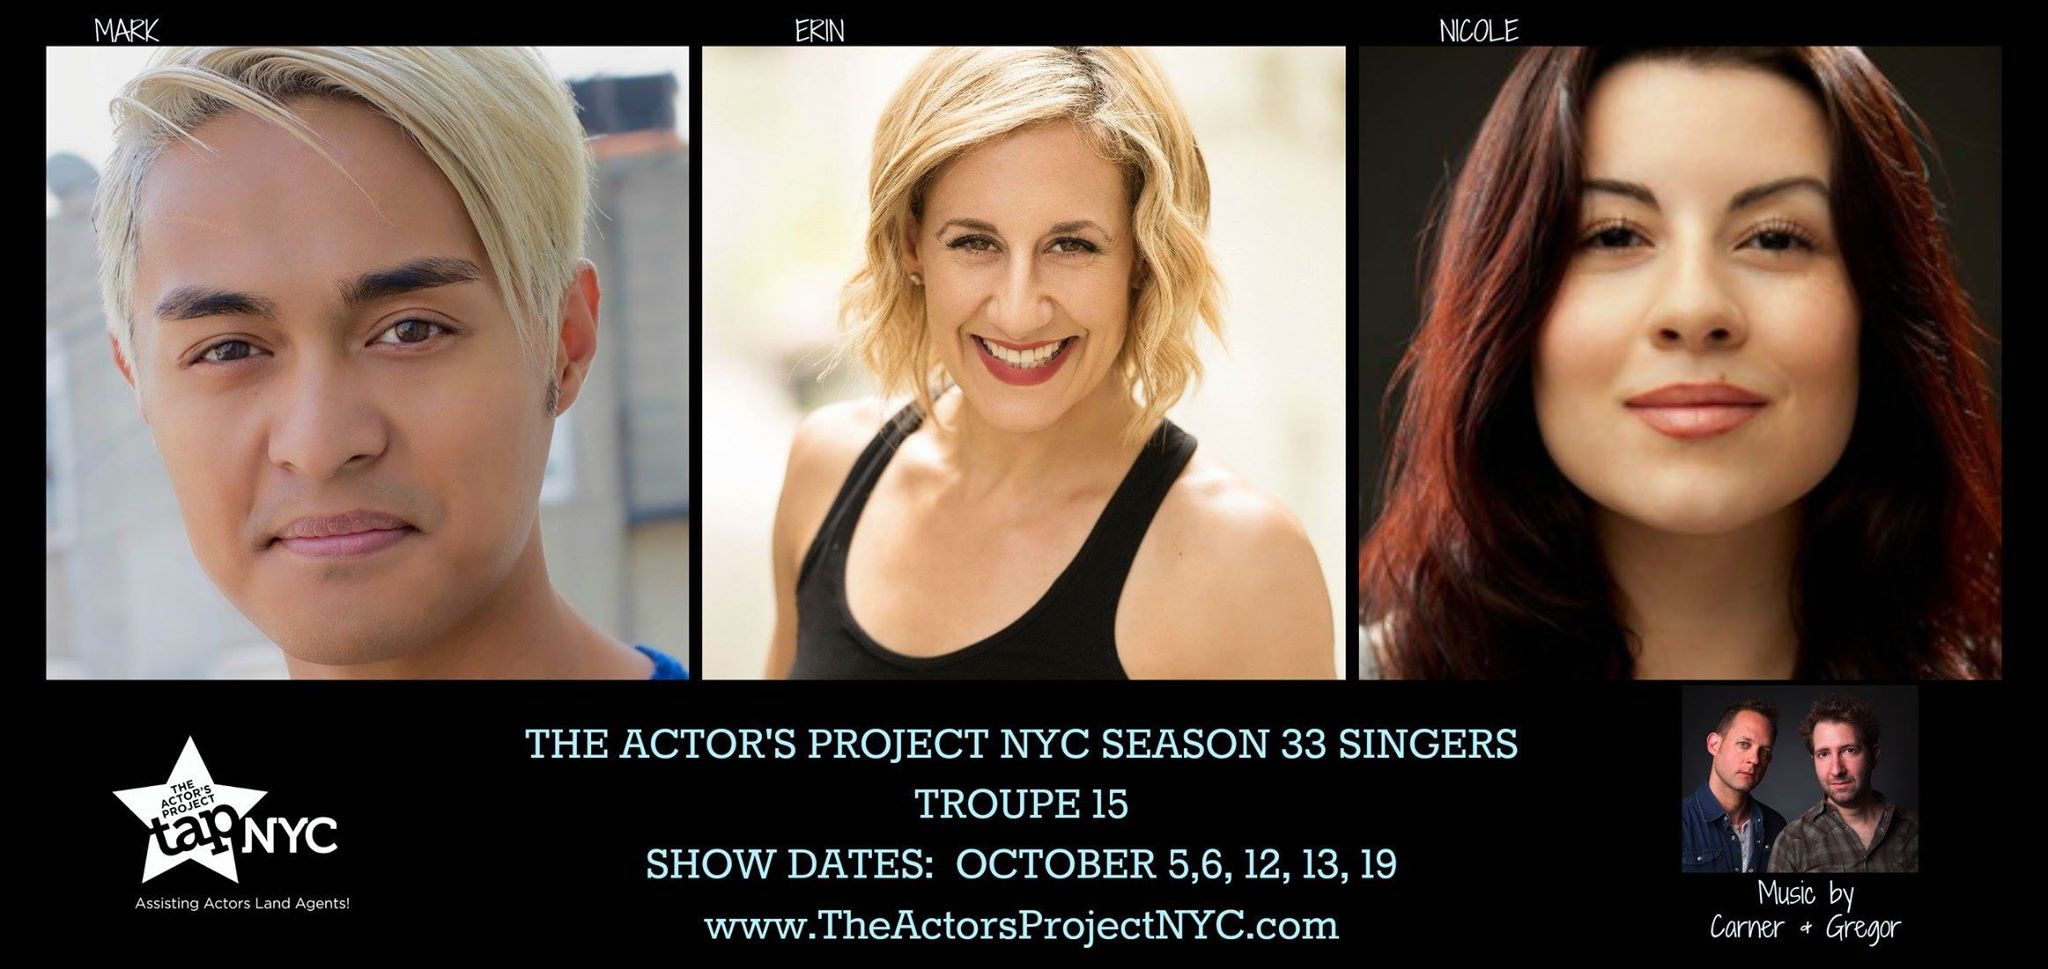 """I'm excited to say I participated in a showcase for  The Actors Project (TAP) NYC  Season 33 showcase. This organization helps assist Actors land agents and representation. I'll be performing a song from the musical pair of  Sam Carner & Derek Gregor !  The showcases have different themes for each night, but each show was a blast. On October 12 for """"Shenanigans,"""" I performed a monologue, which I did at the Monologue Challenge that TAP NYC also put on. Below were the dates of the event!"""